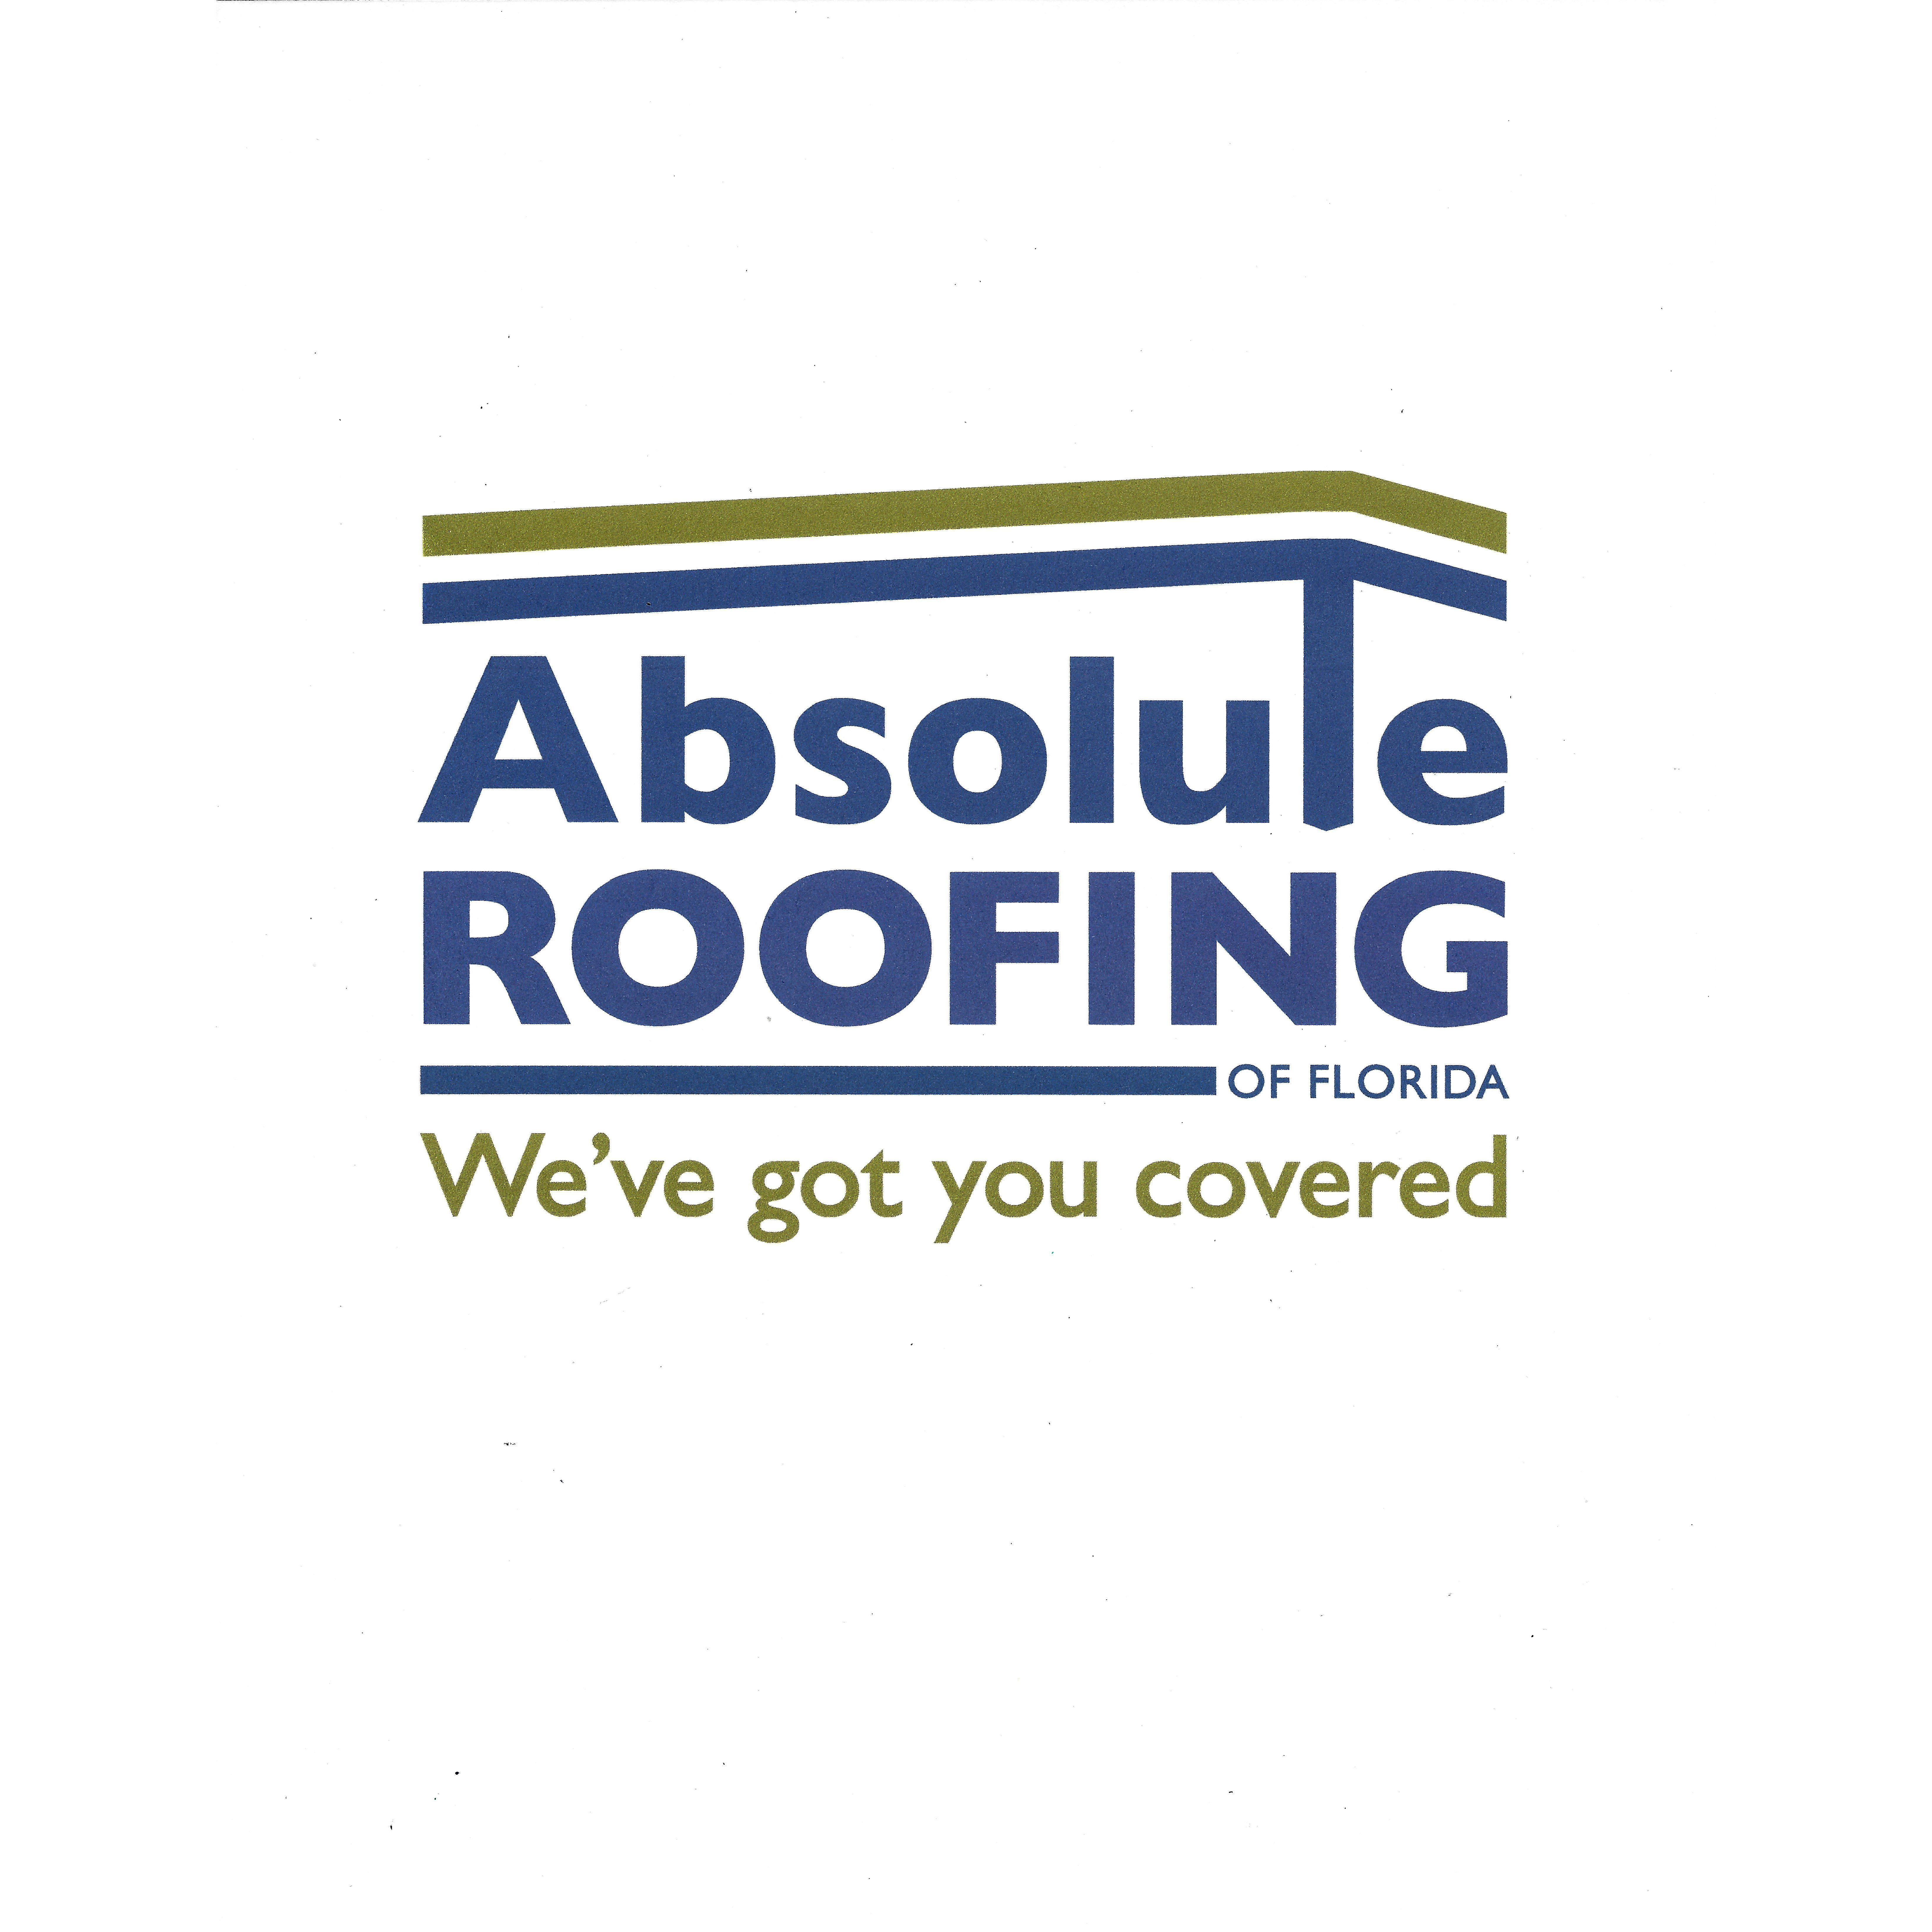 Absolute Roofing of Florida image 3